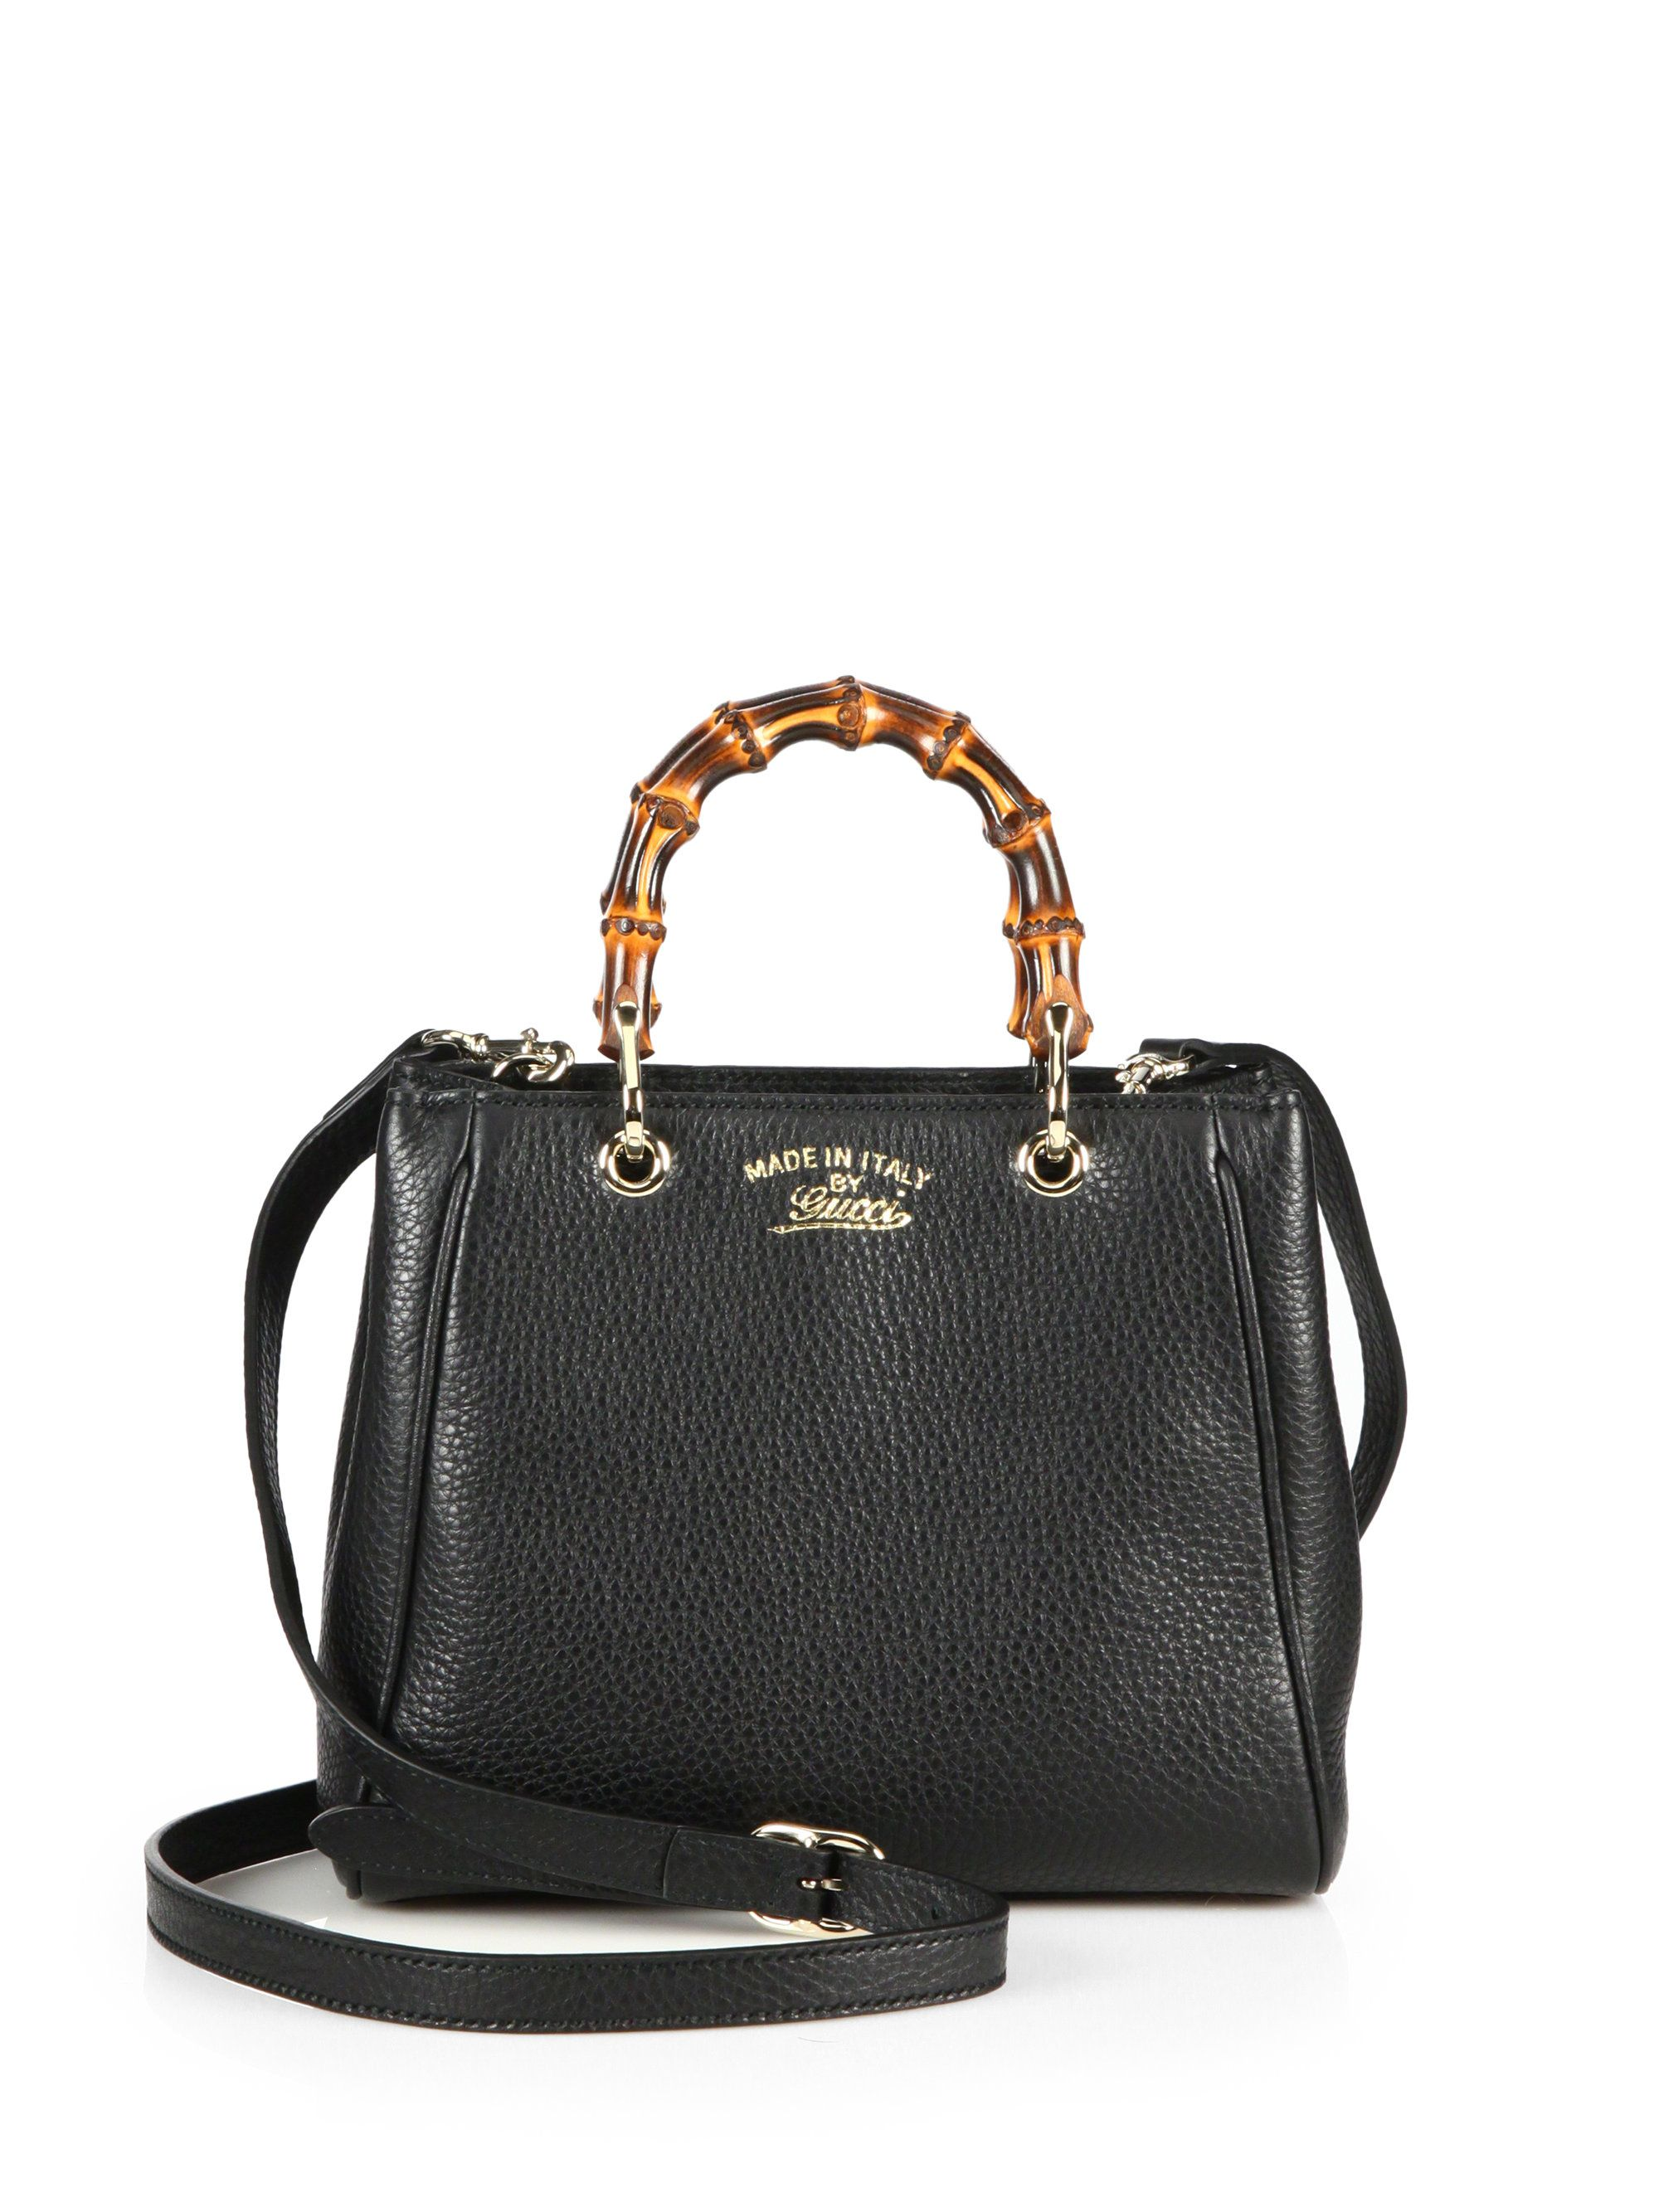 2b2a7dc9dae59 Gucci Bamboo Shopper Mini Leather Top Handle Bag in Black (NERO-BLACK)